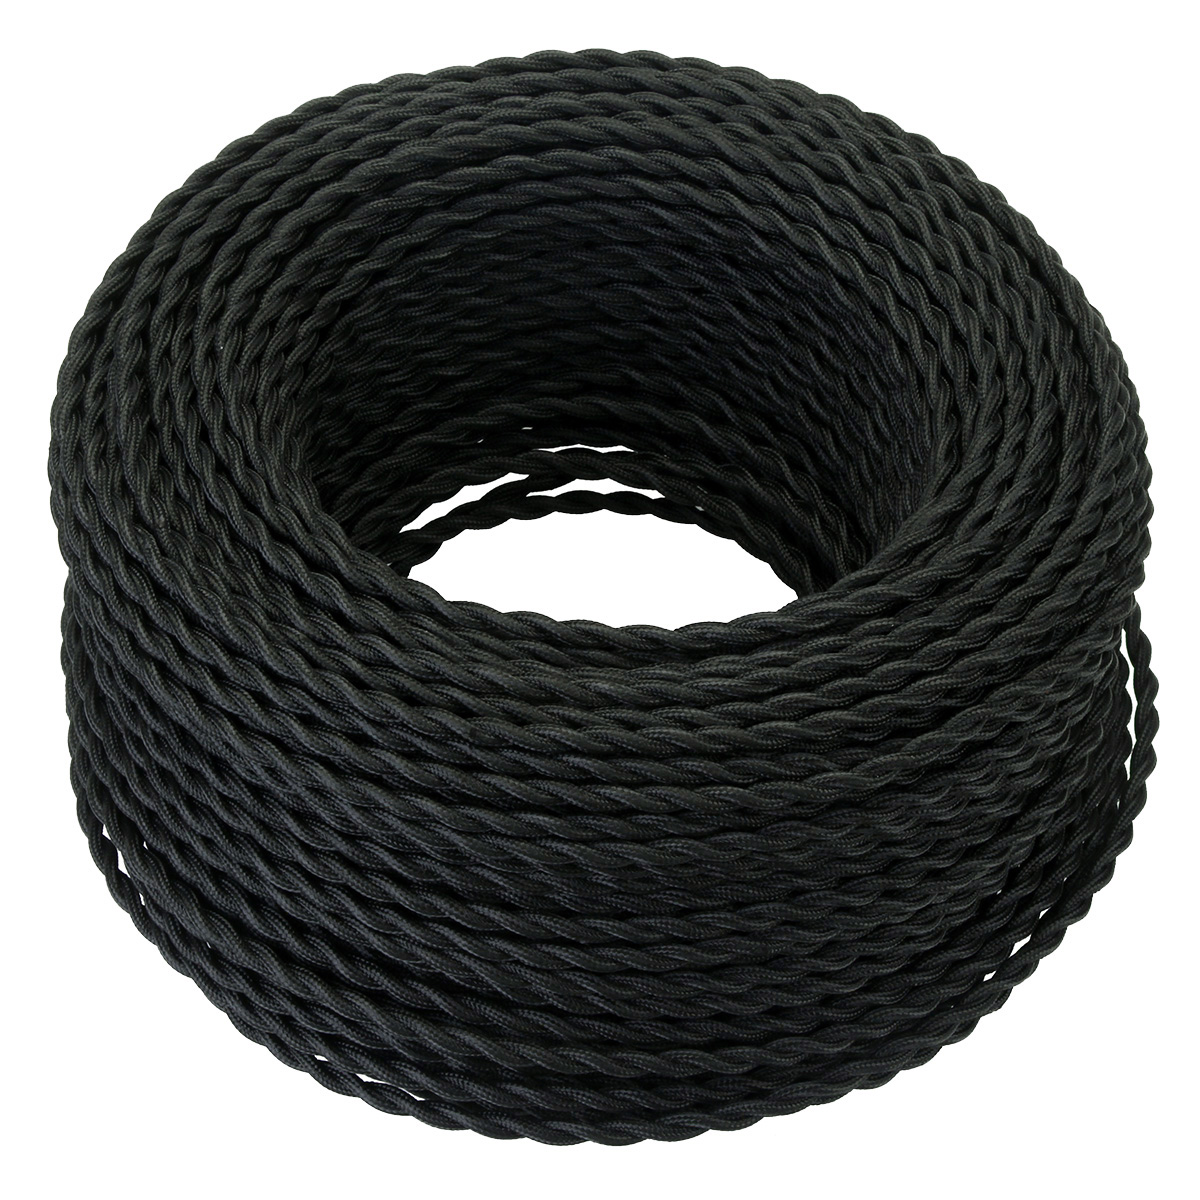 CARGO SPLIT WIRE CABLE COVERING FLEXIBLE CONDUIT PROTECTION 15mm 10M 191947